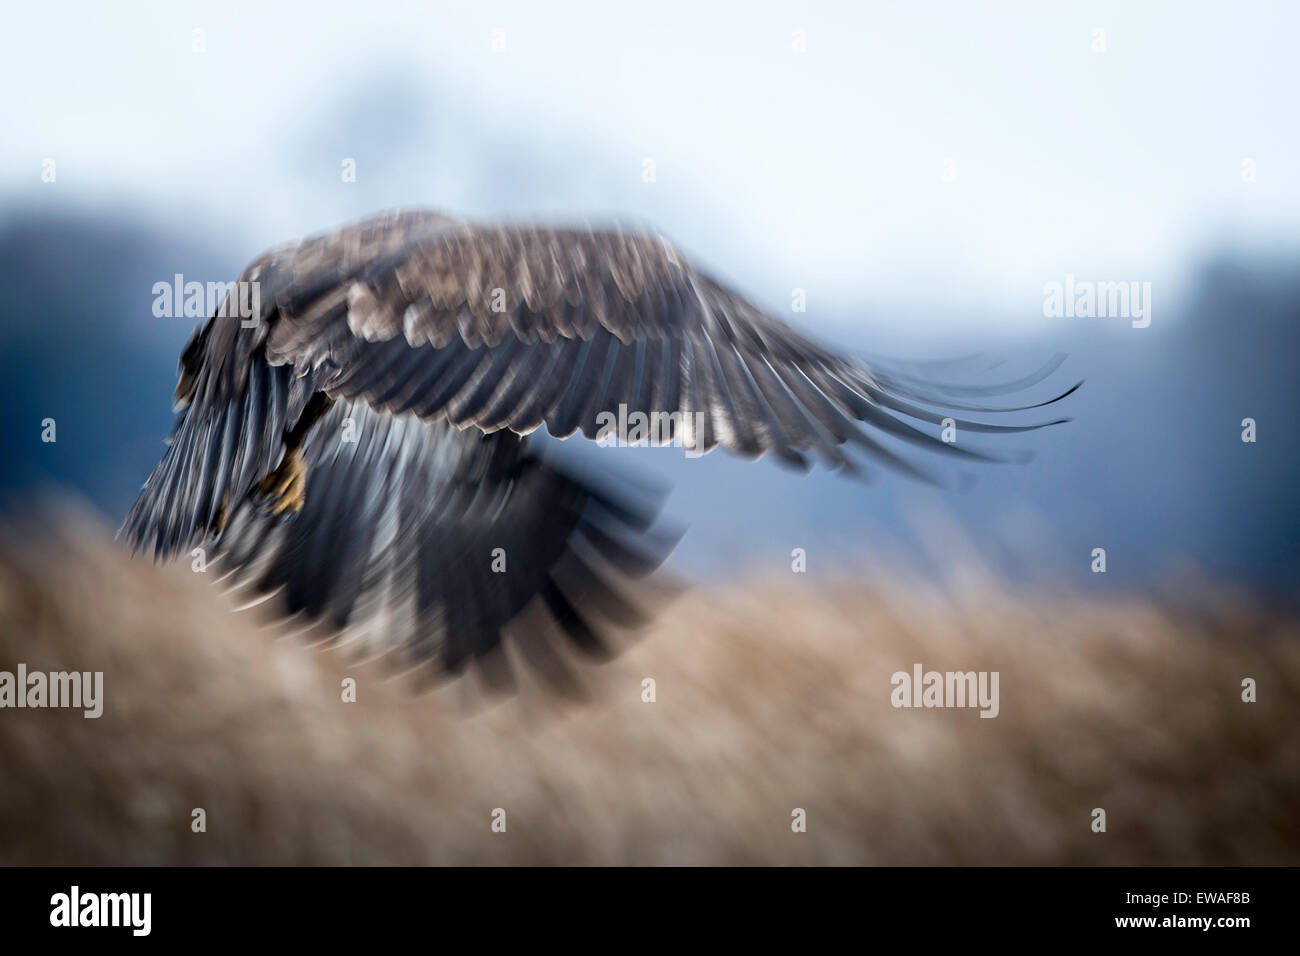 Juvenile eagle in motion blur, with tricolored background. - Stock Image